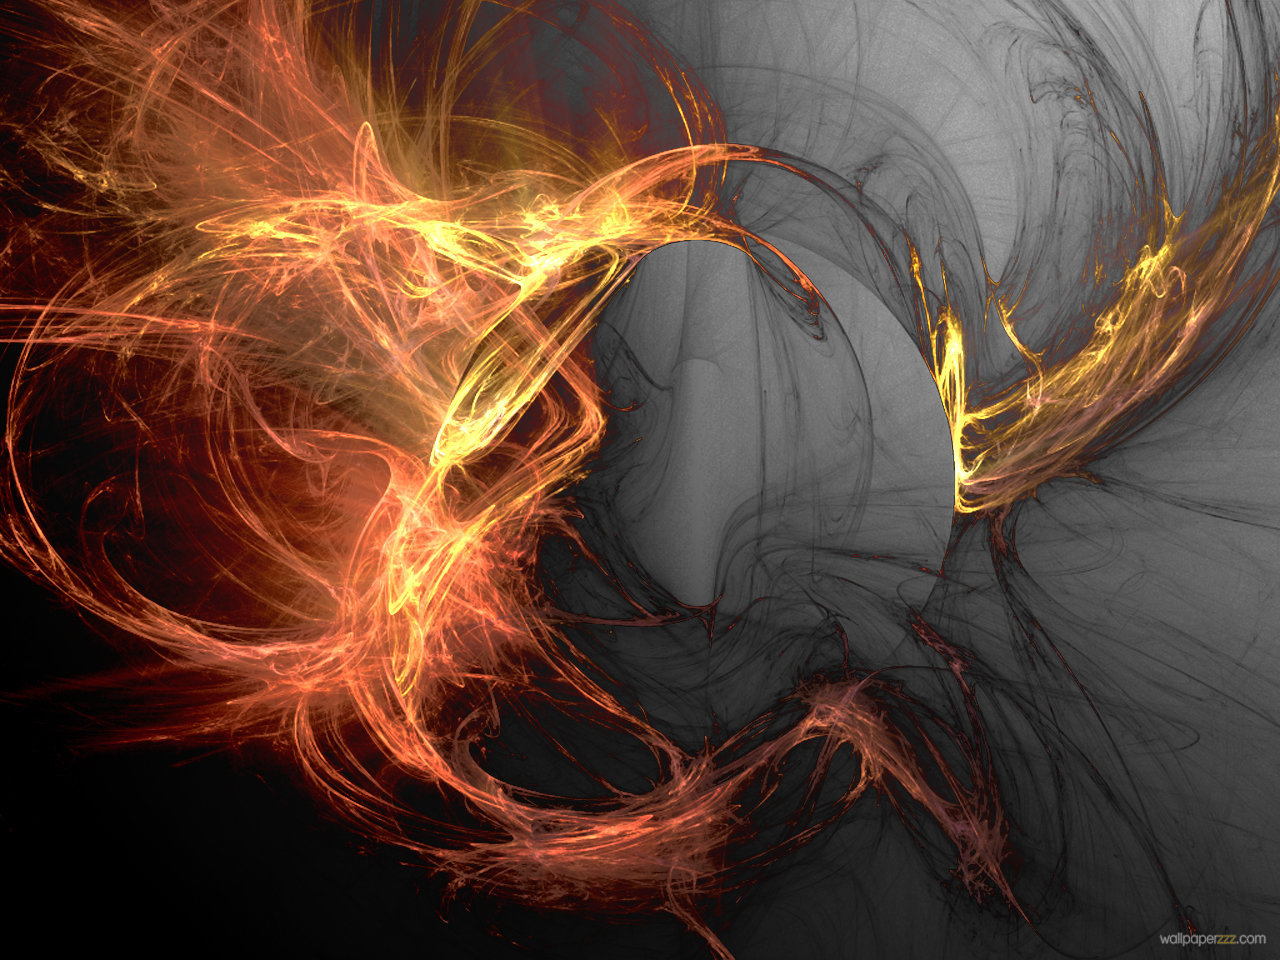 Flame background wallpaper